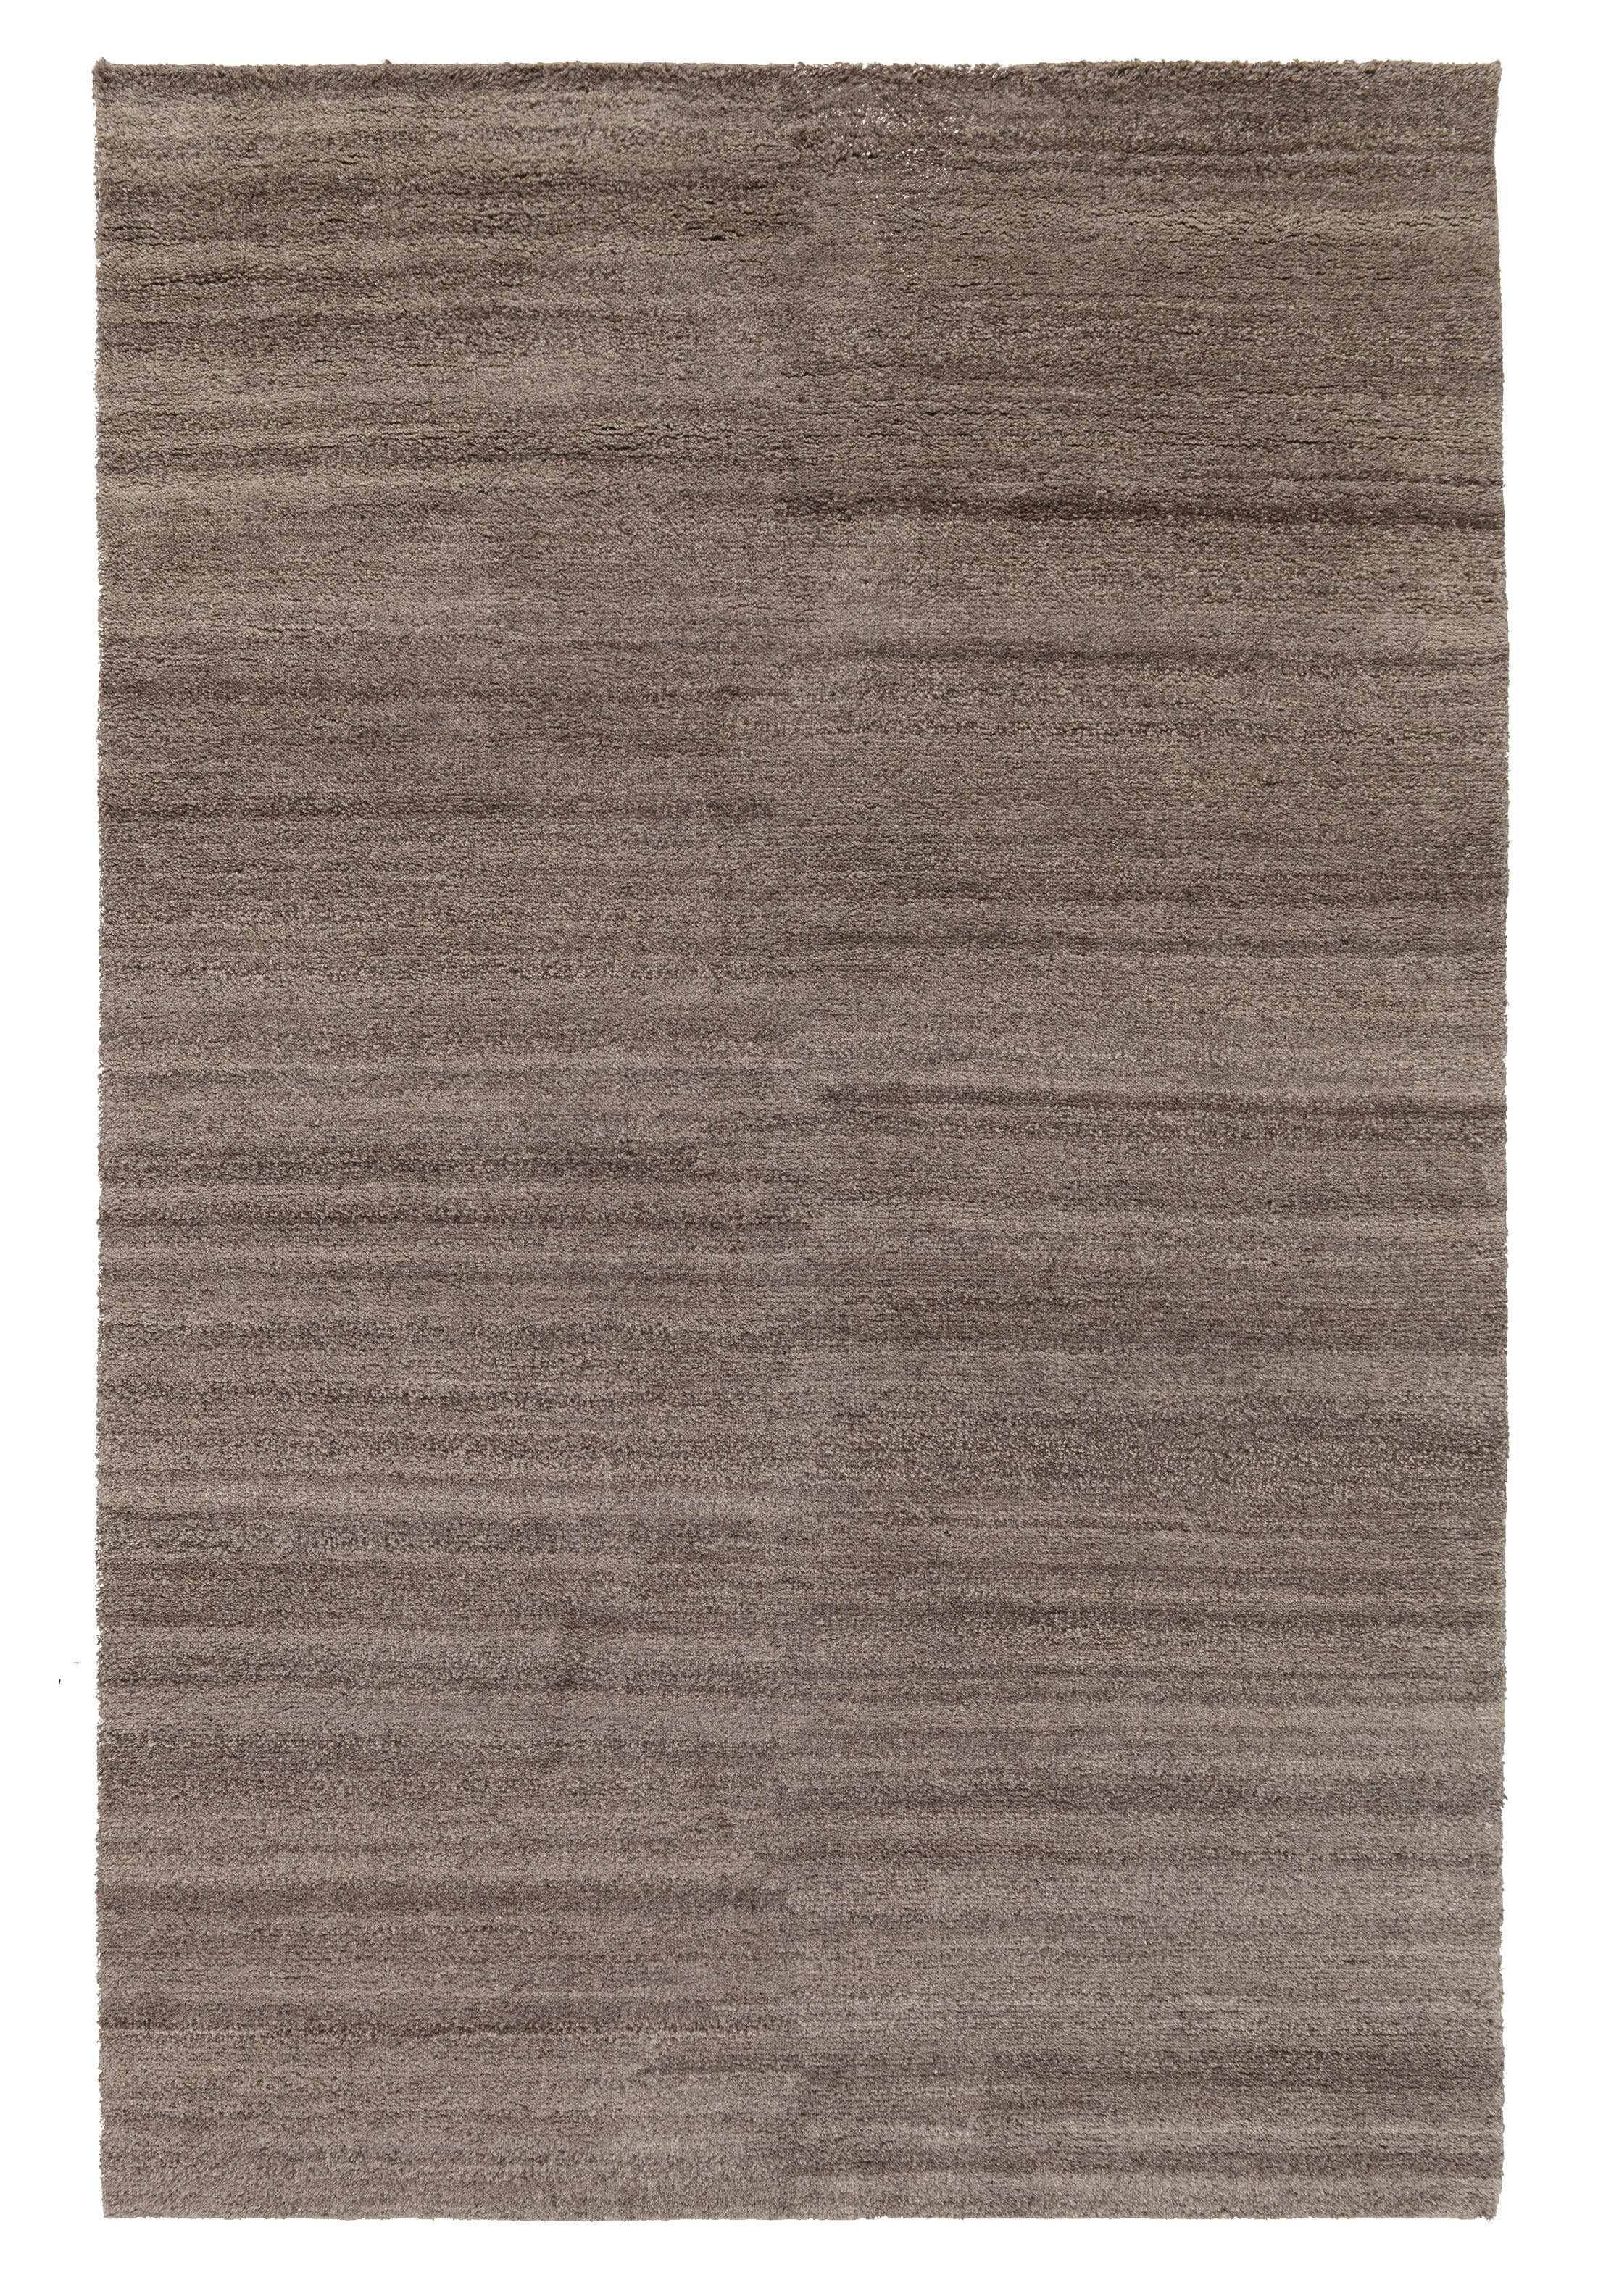 Acton Hand-Knotted Hazel Area Rug Rug Size: 9' x 12'